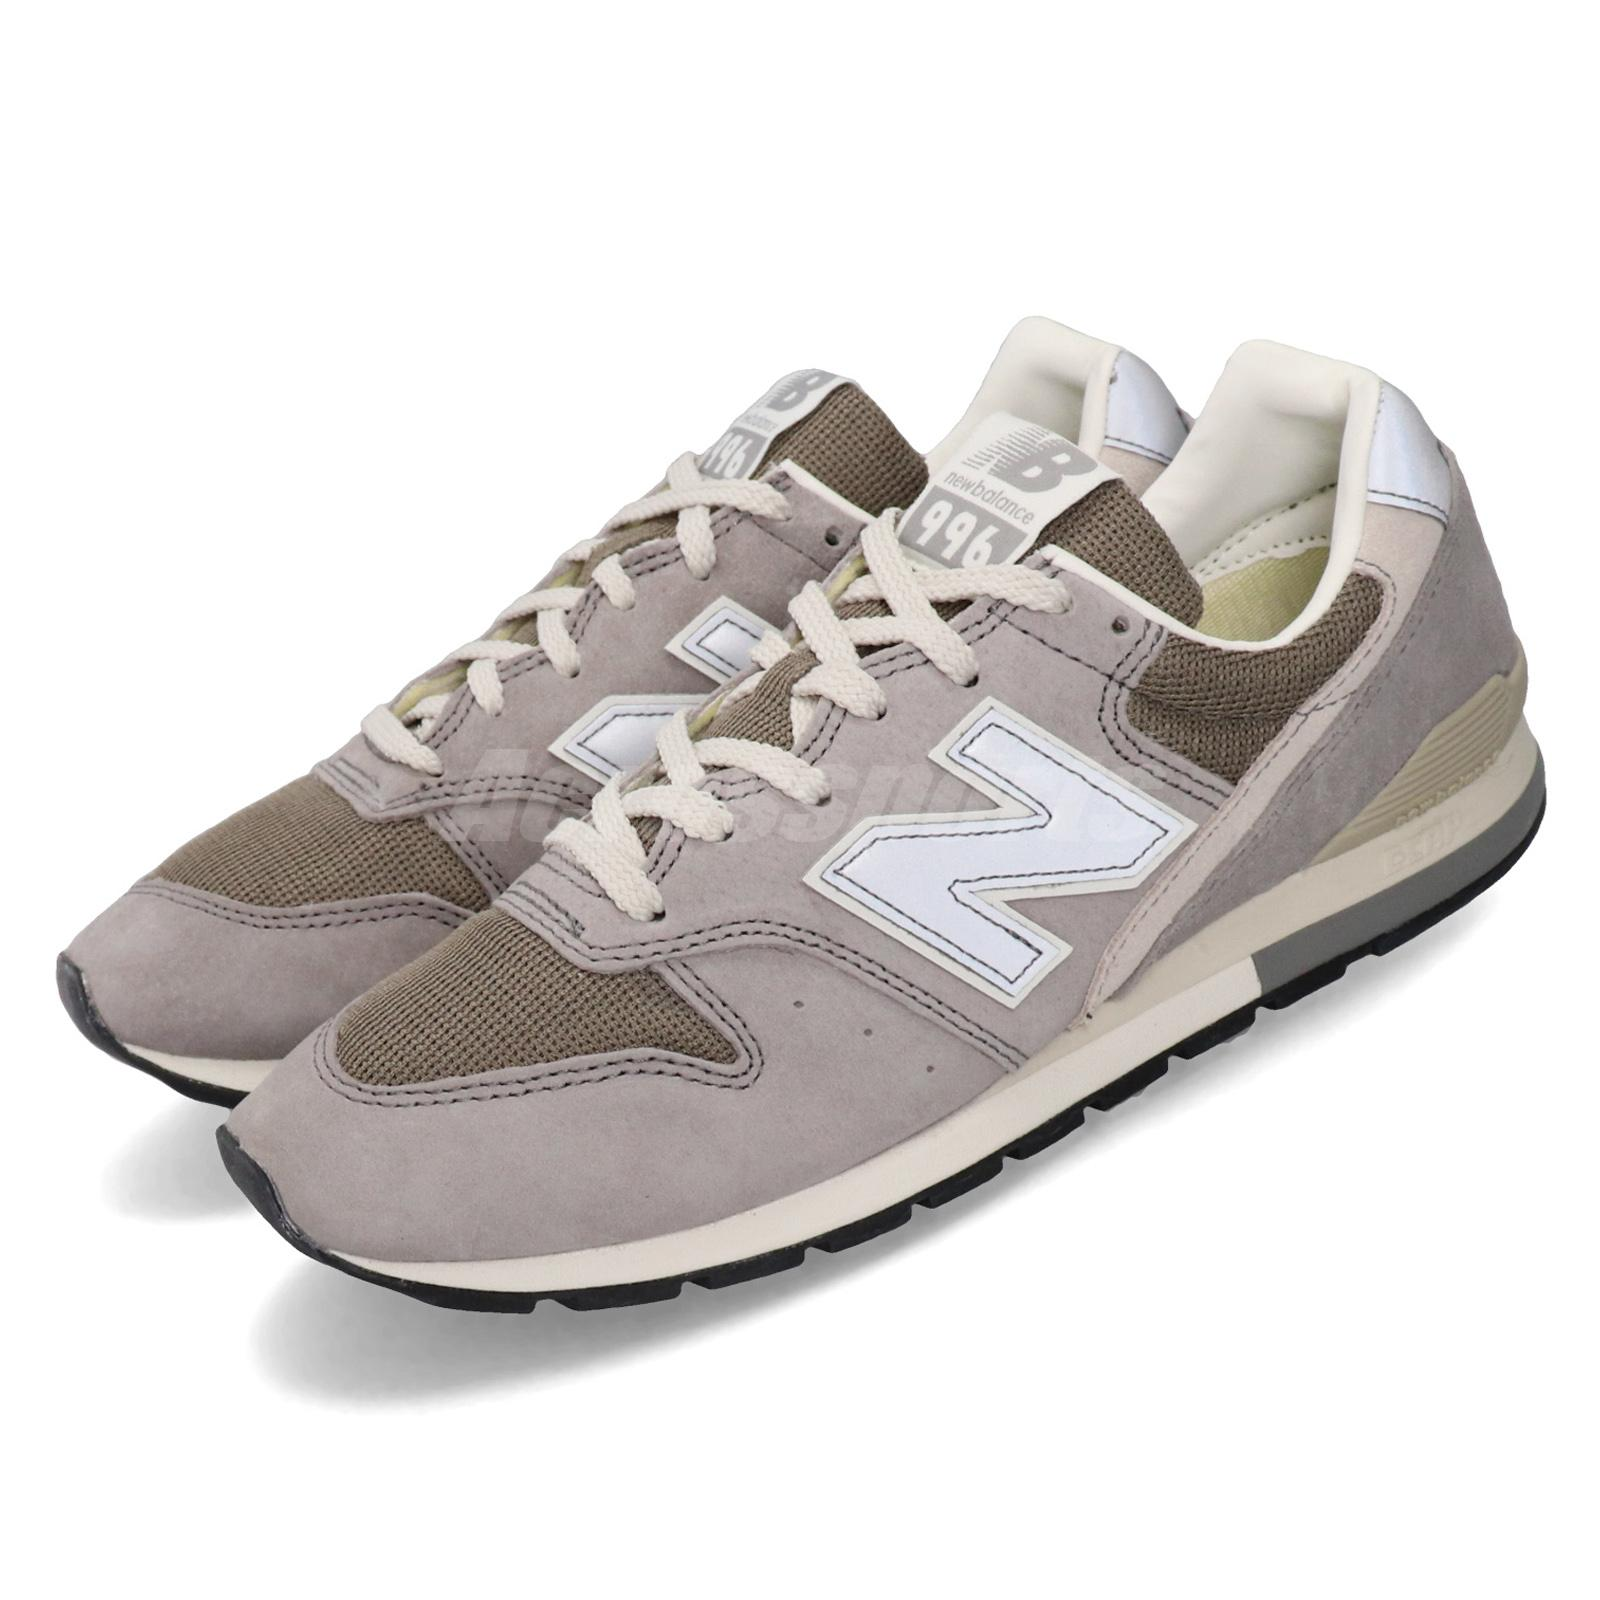 Details about New Balance CM996GY D Grey Silver Men Women Unisex Running Casual Shoes CM996GYD